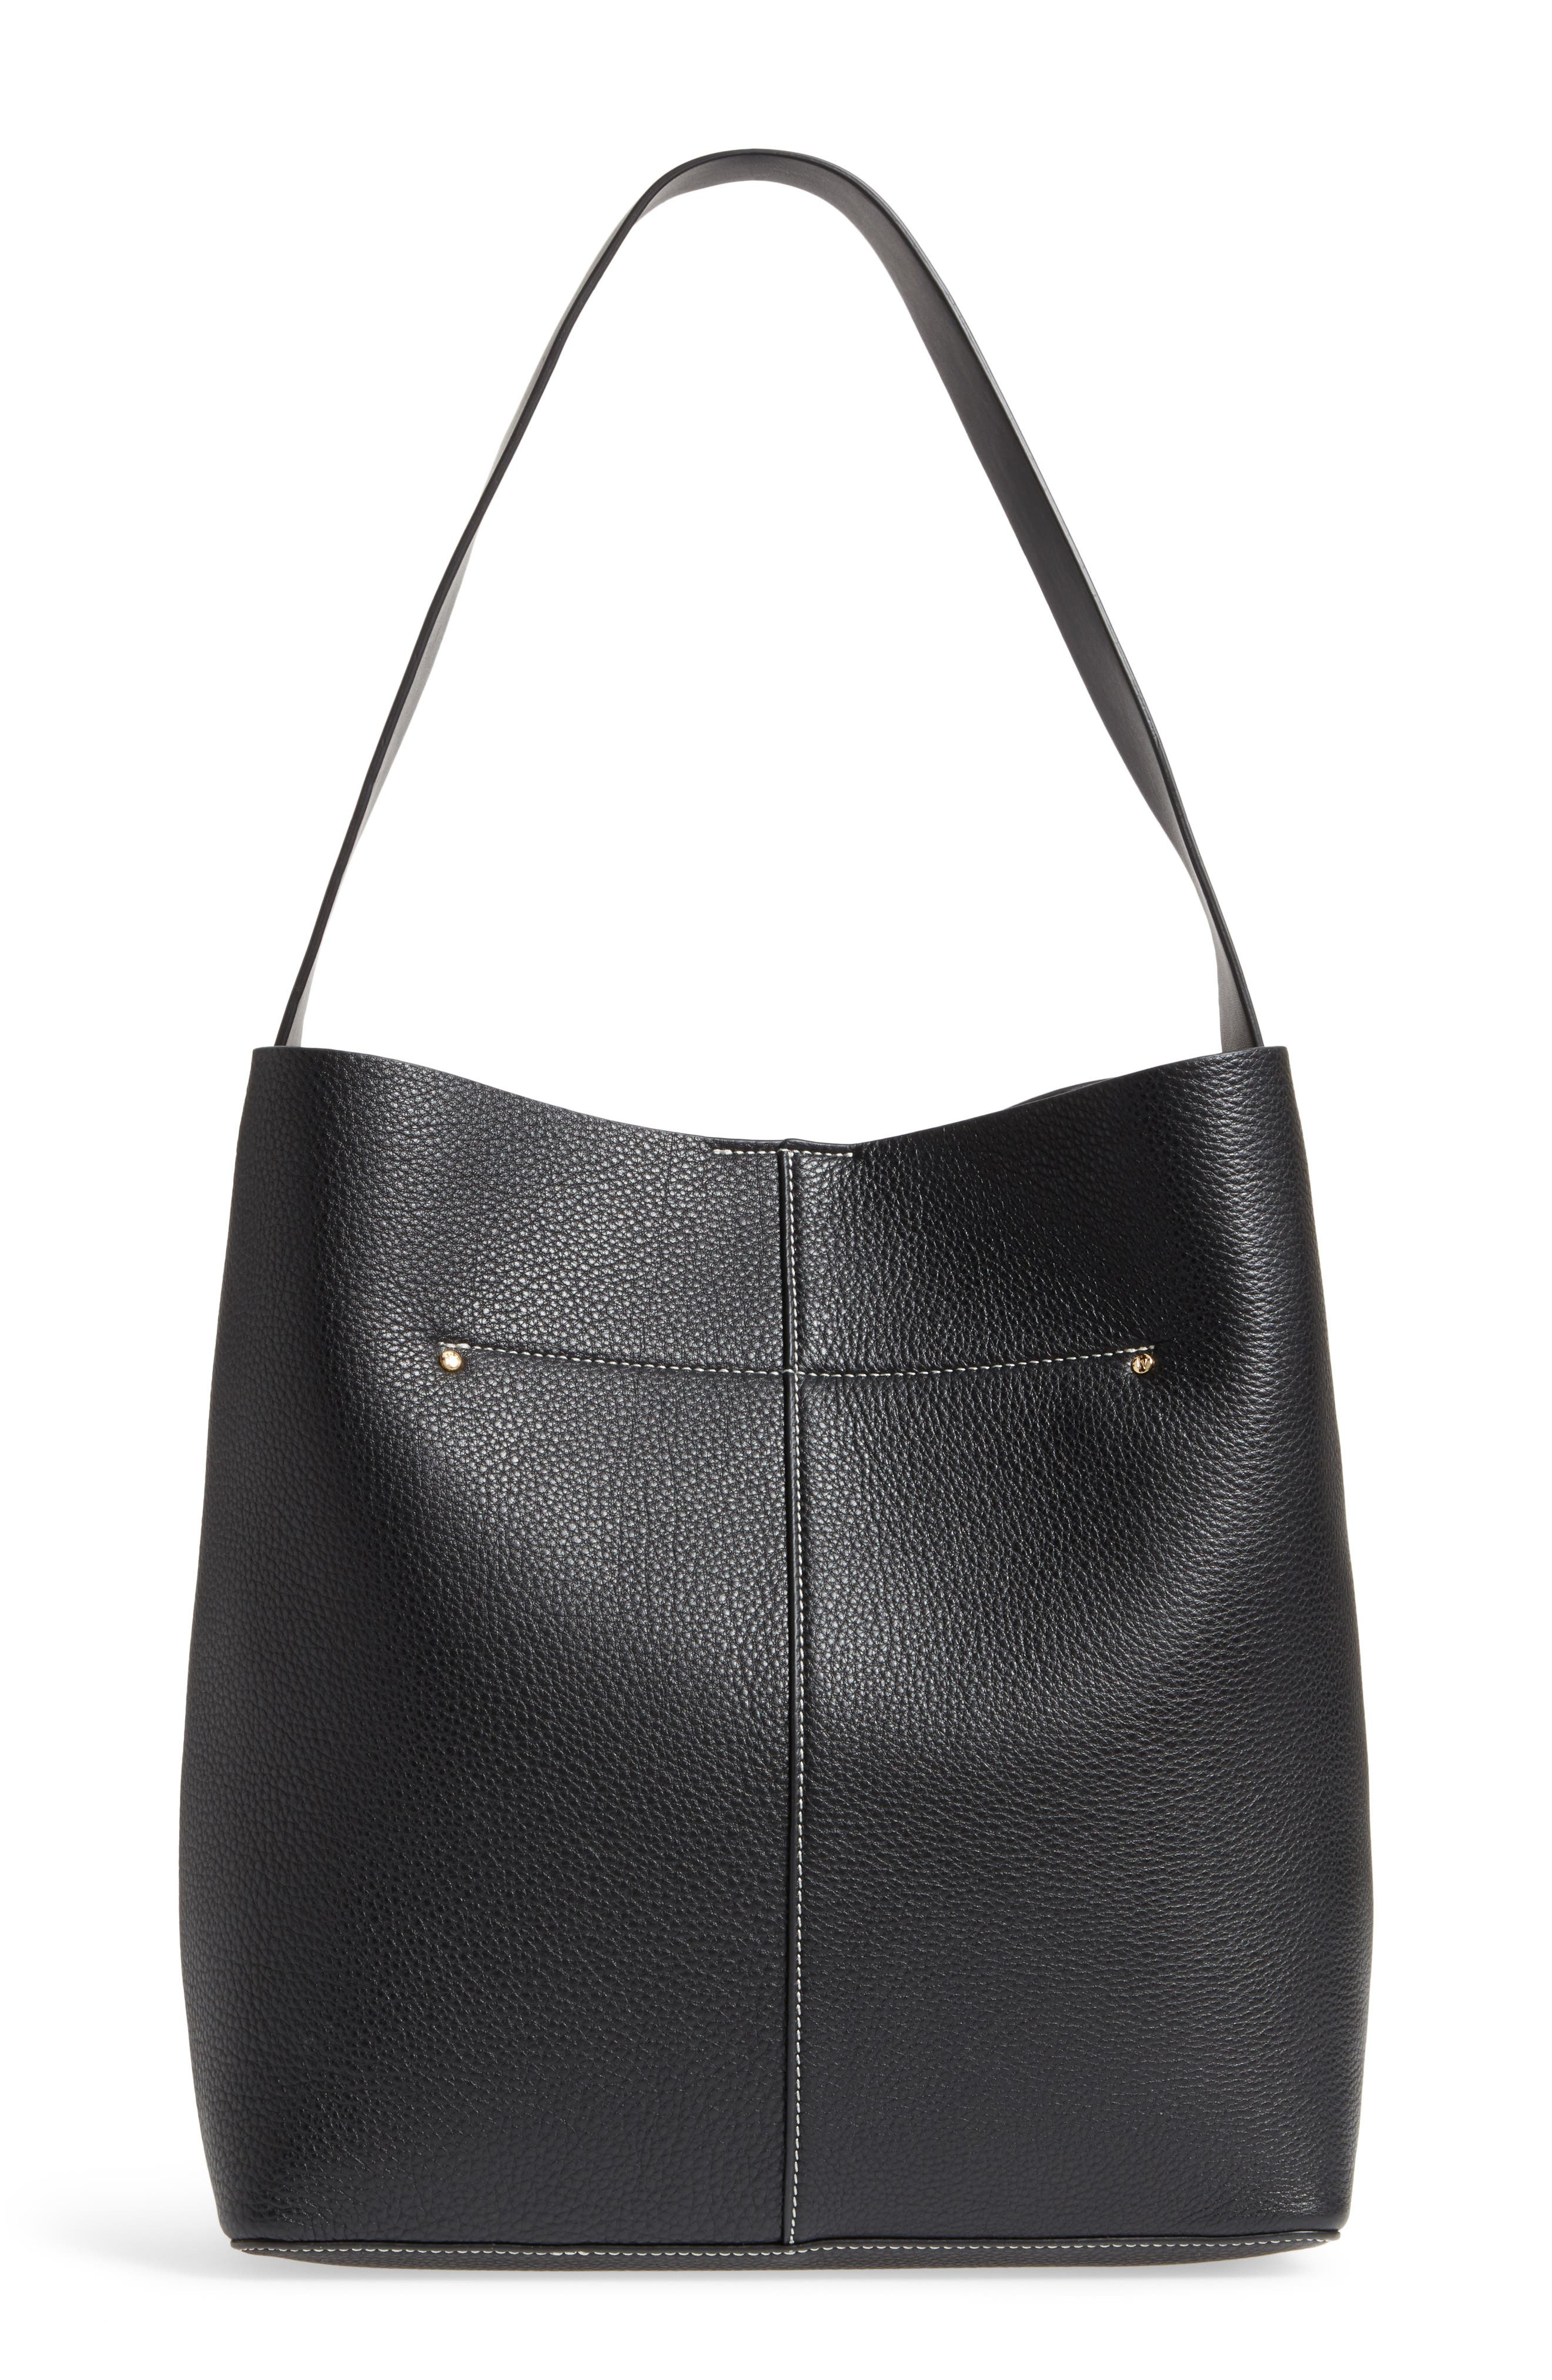 Large Leather Shoulder Bag,                             Alternate thumbnail 3, color,                             001